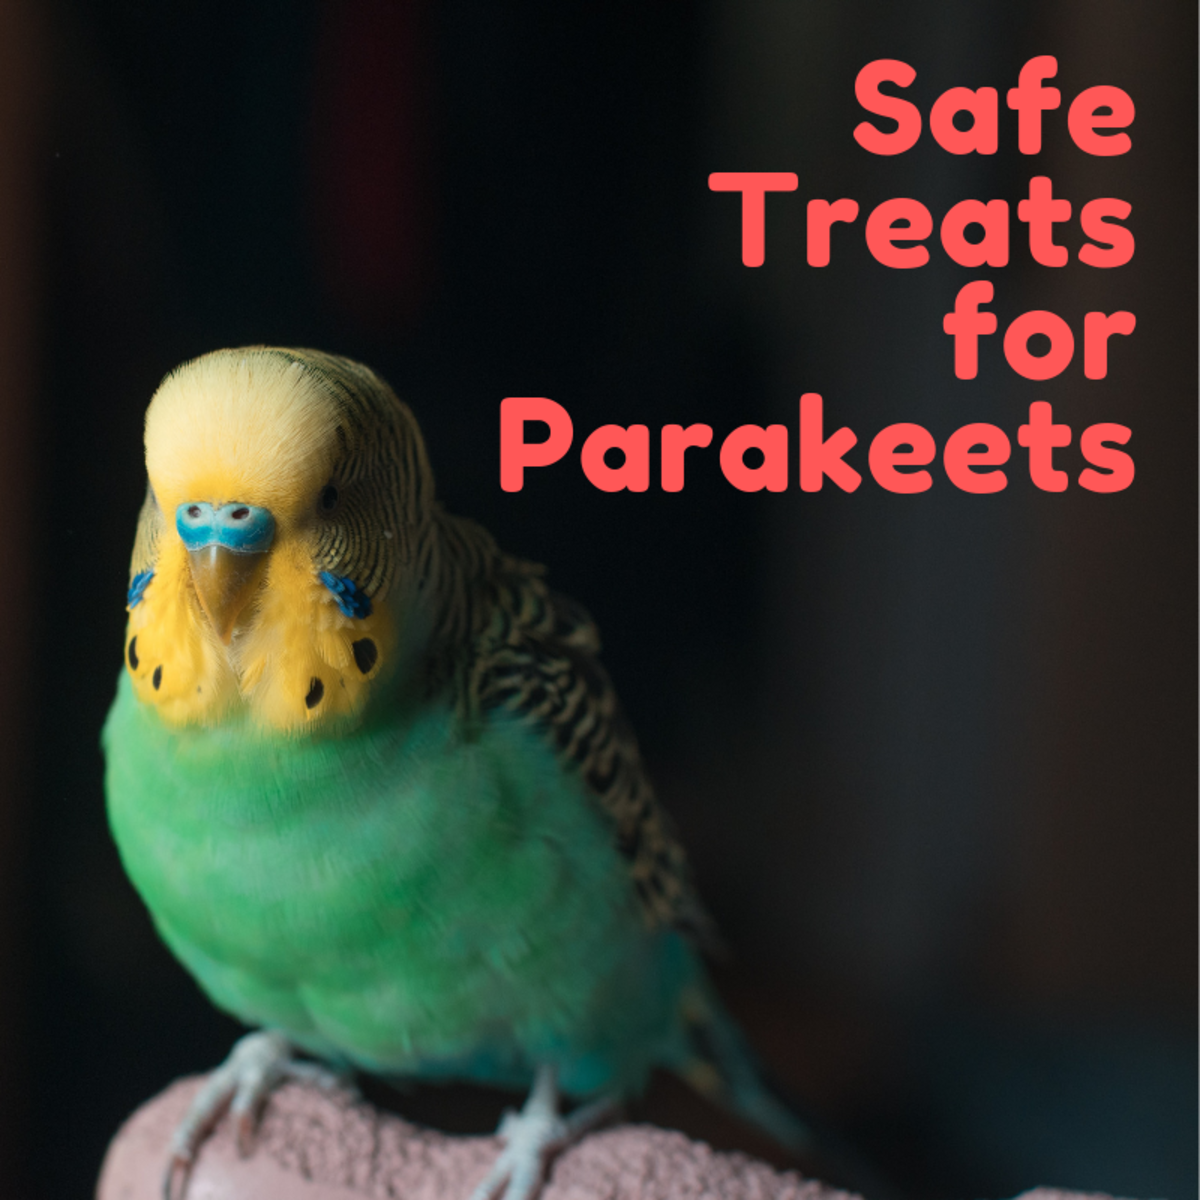 Foods Are Safe For Parakeets To Eat